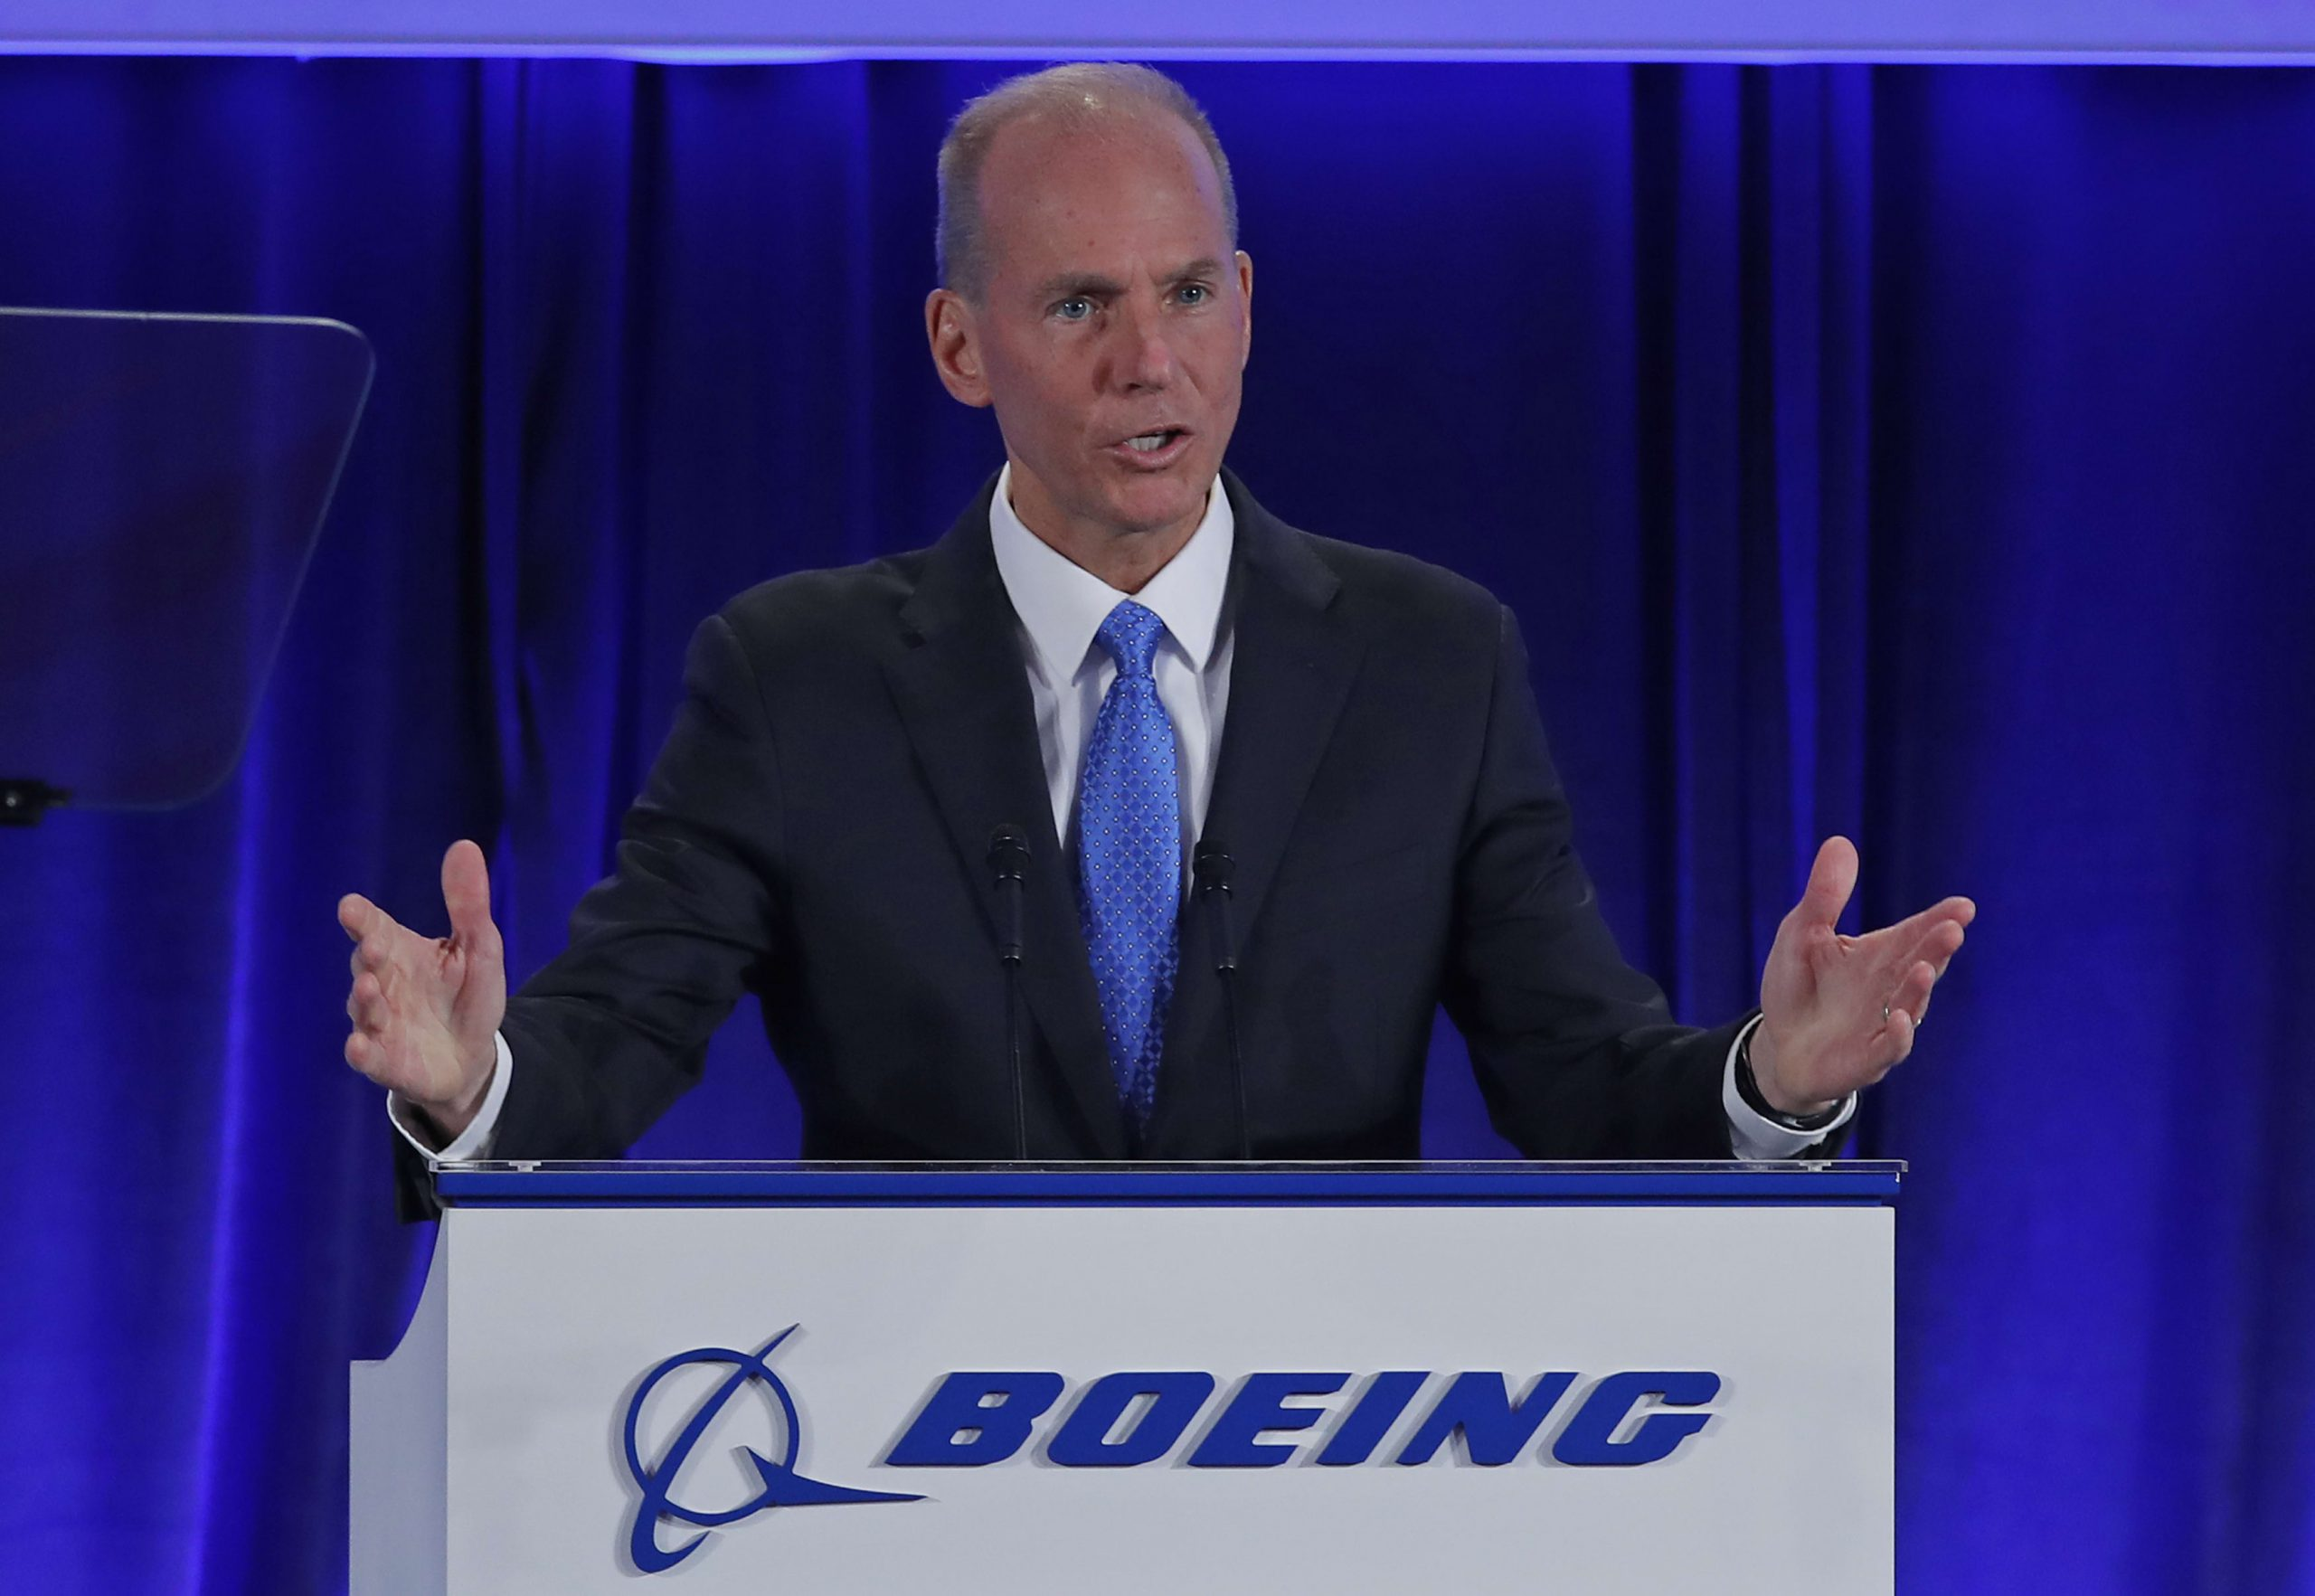 Boeing CEO Dennis Muilenburg's departure adds to a record year of upheaval among corporate leaders